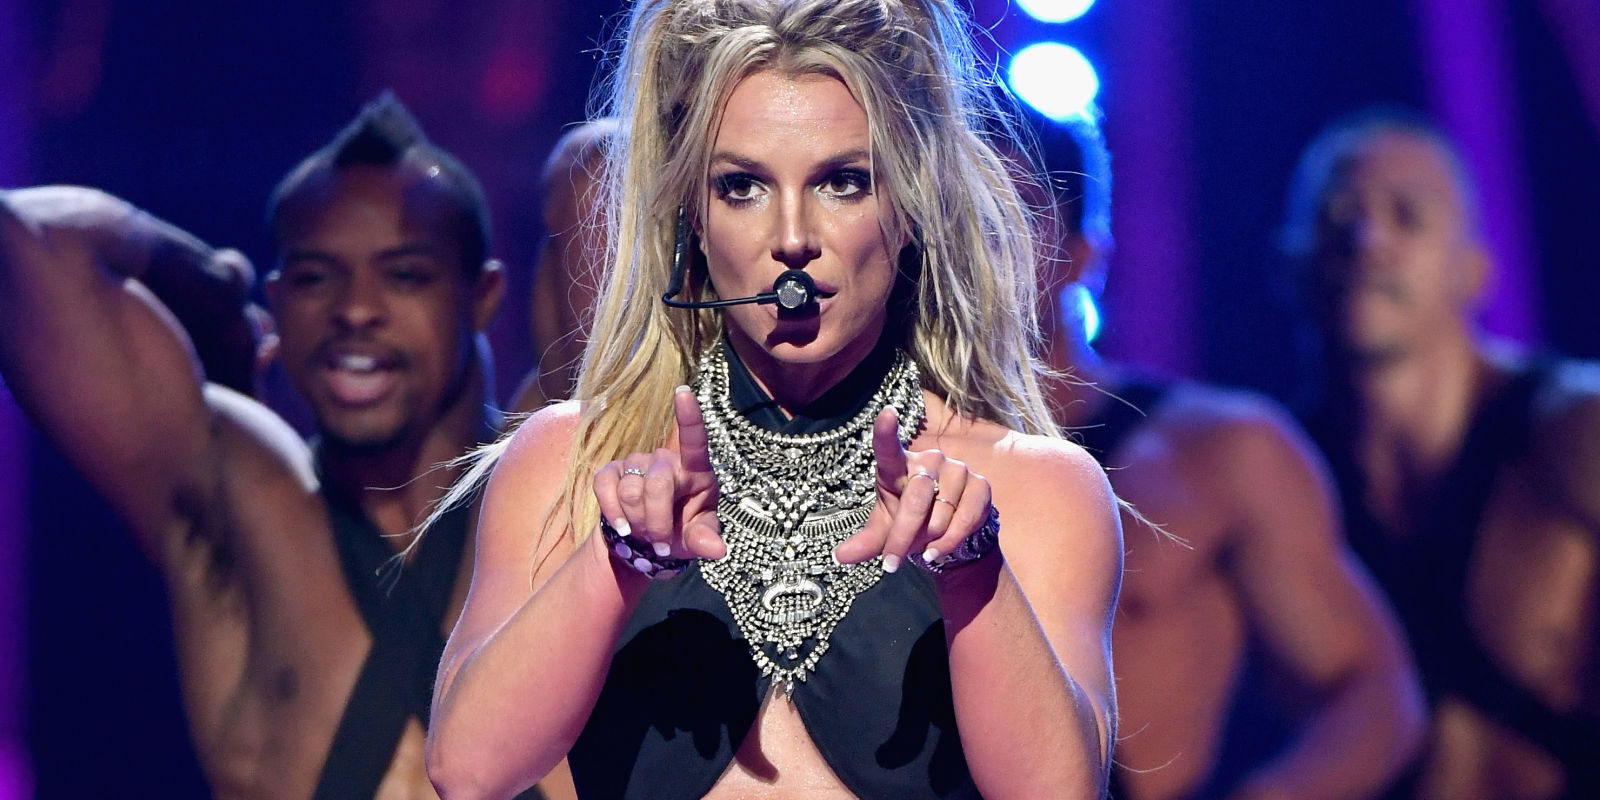 LAS VEGAS, NV - SEPTEMBER 24: Britney Spears performs onstage at the 2016  iHeartRadio